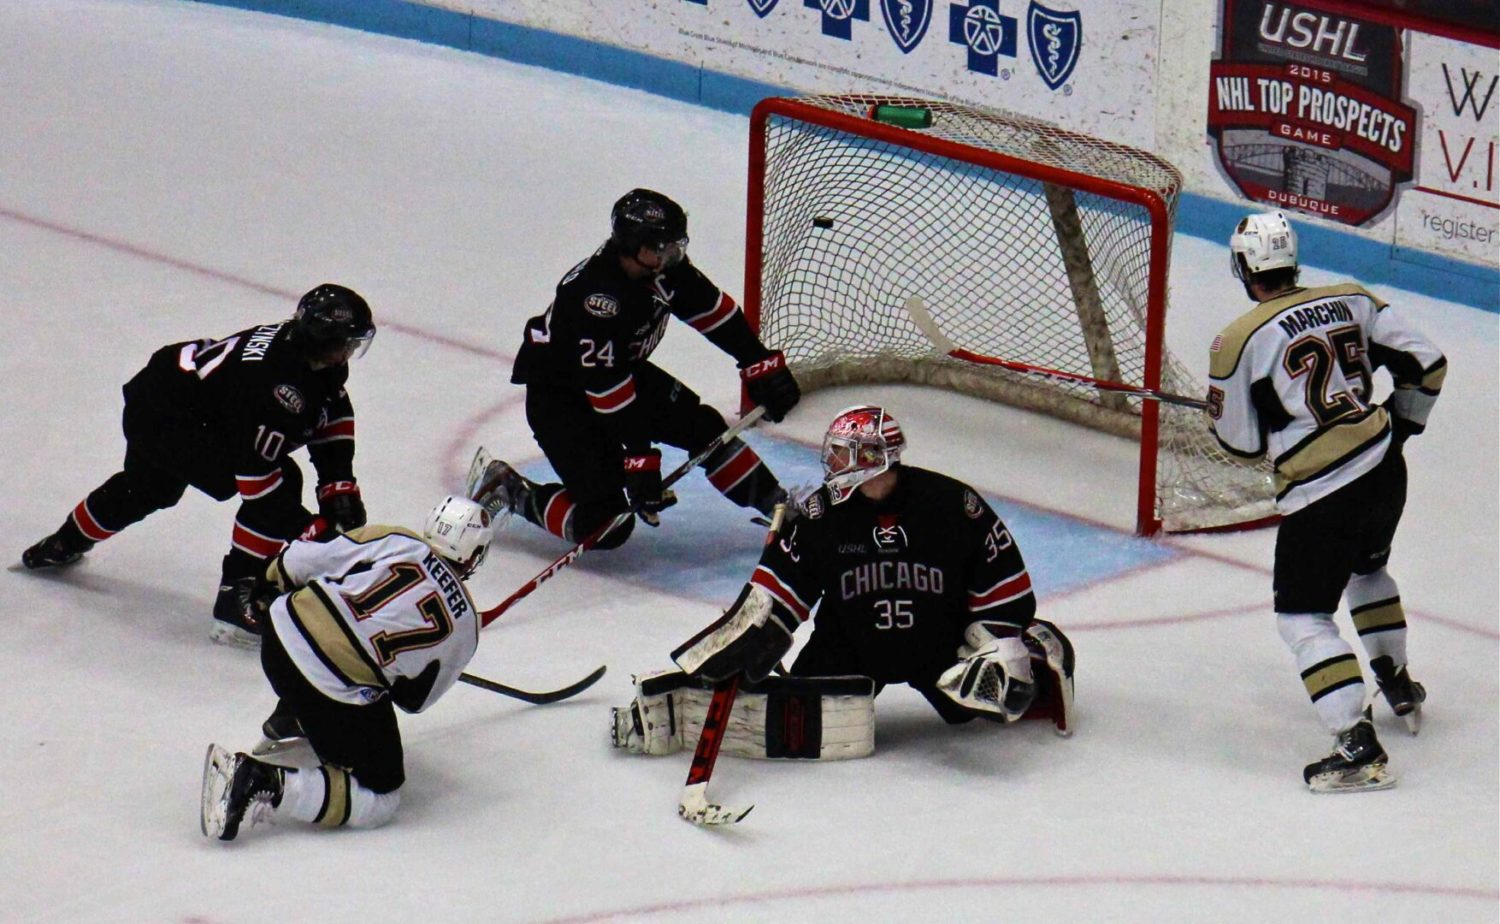 Lumberjack winless streak hits three games with a 4-2 loss to Chicago in a New Year's Eve contest